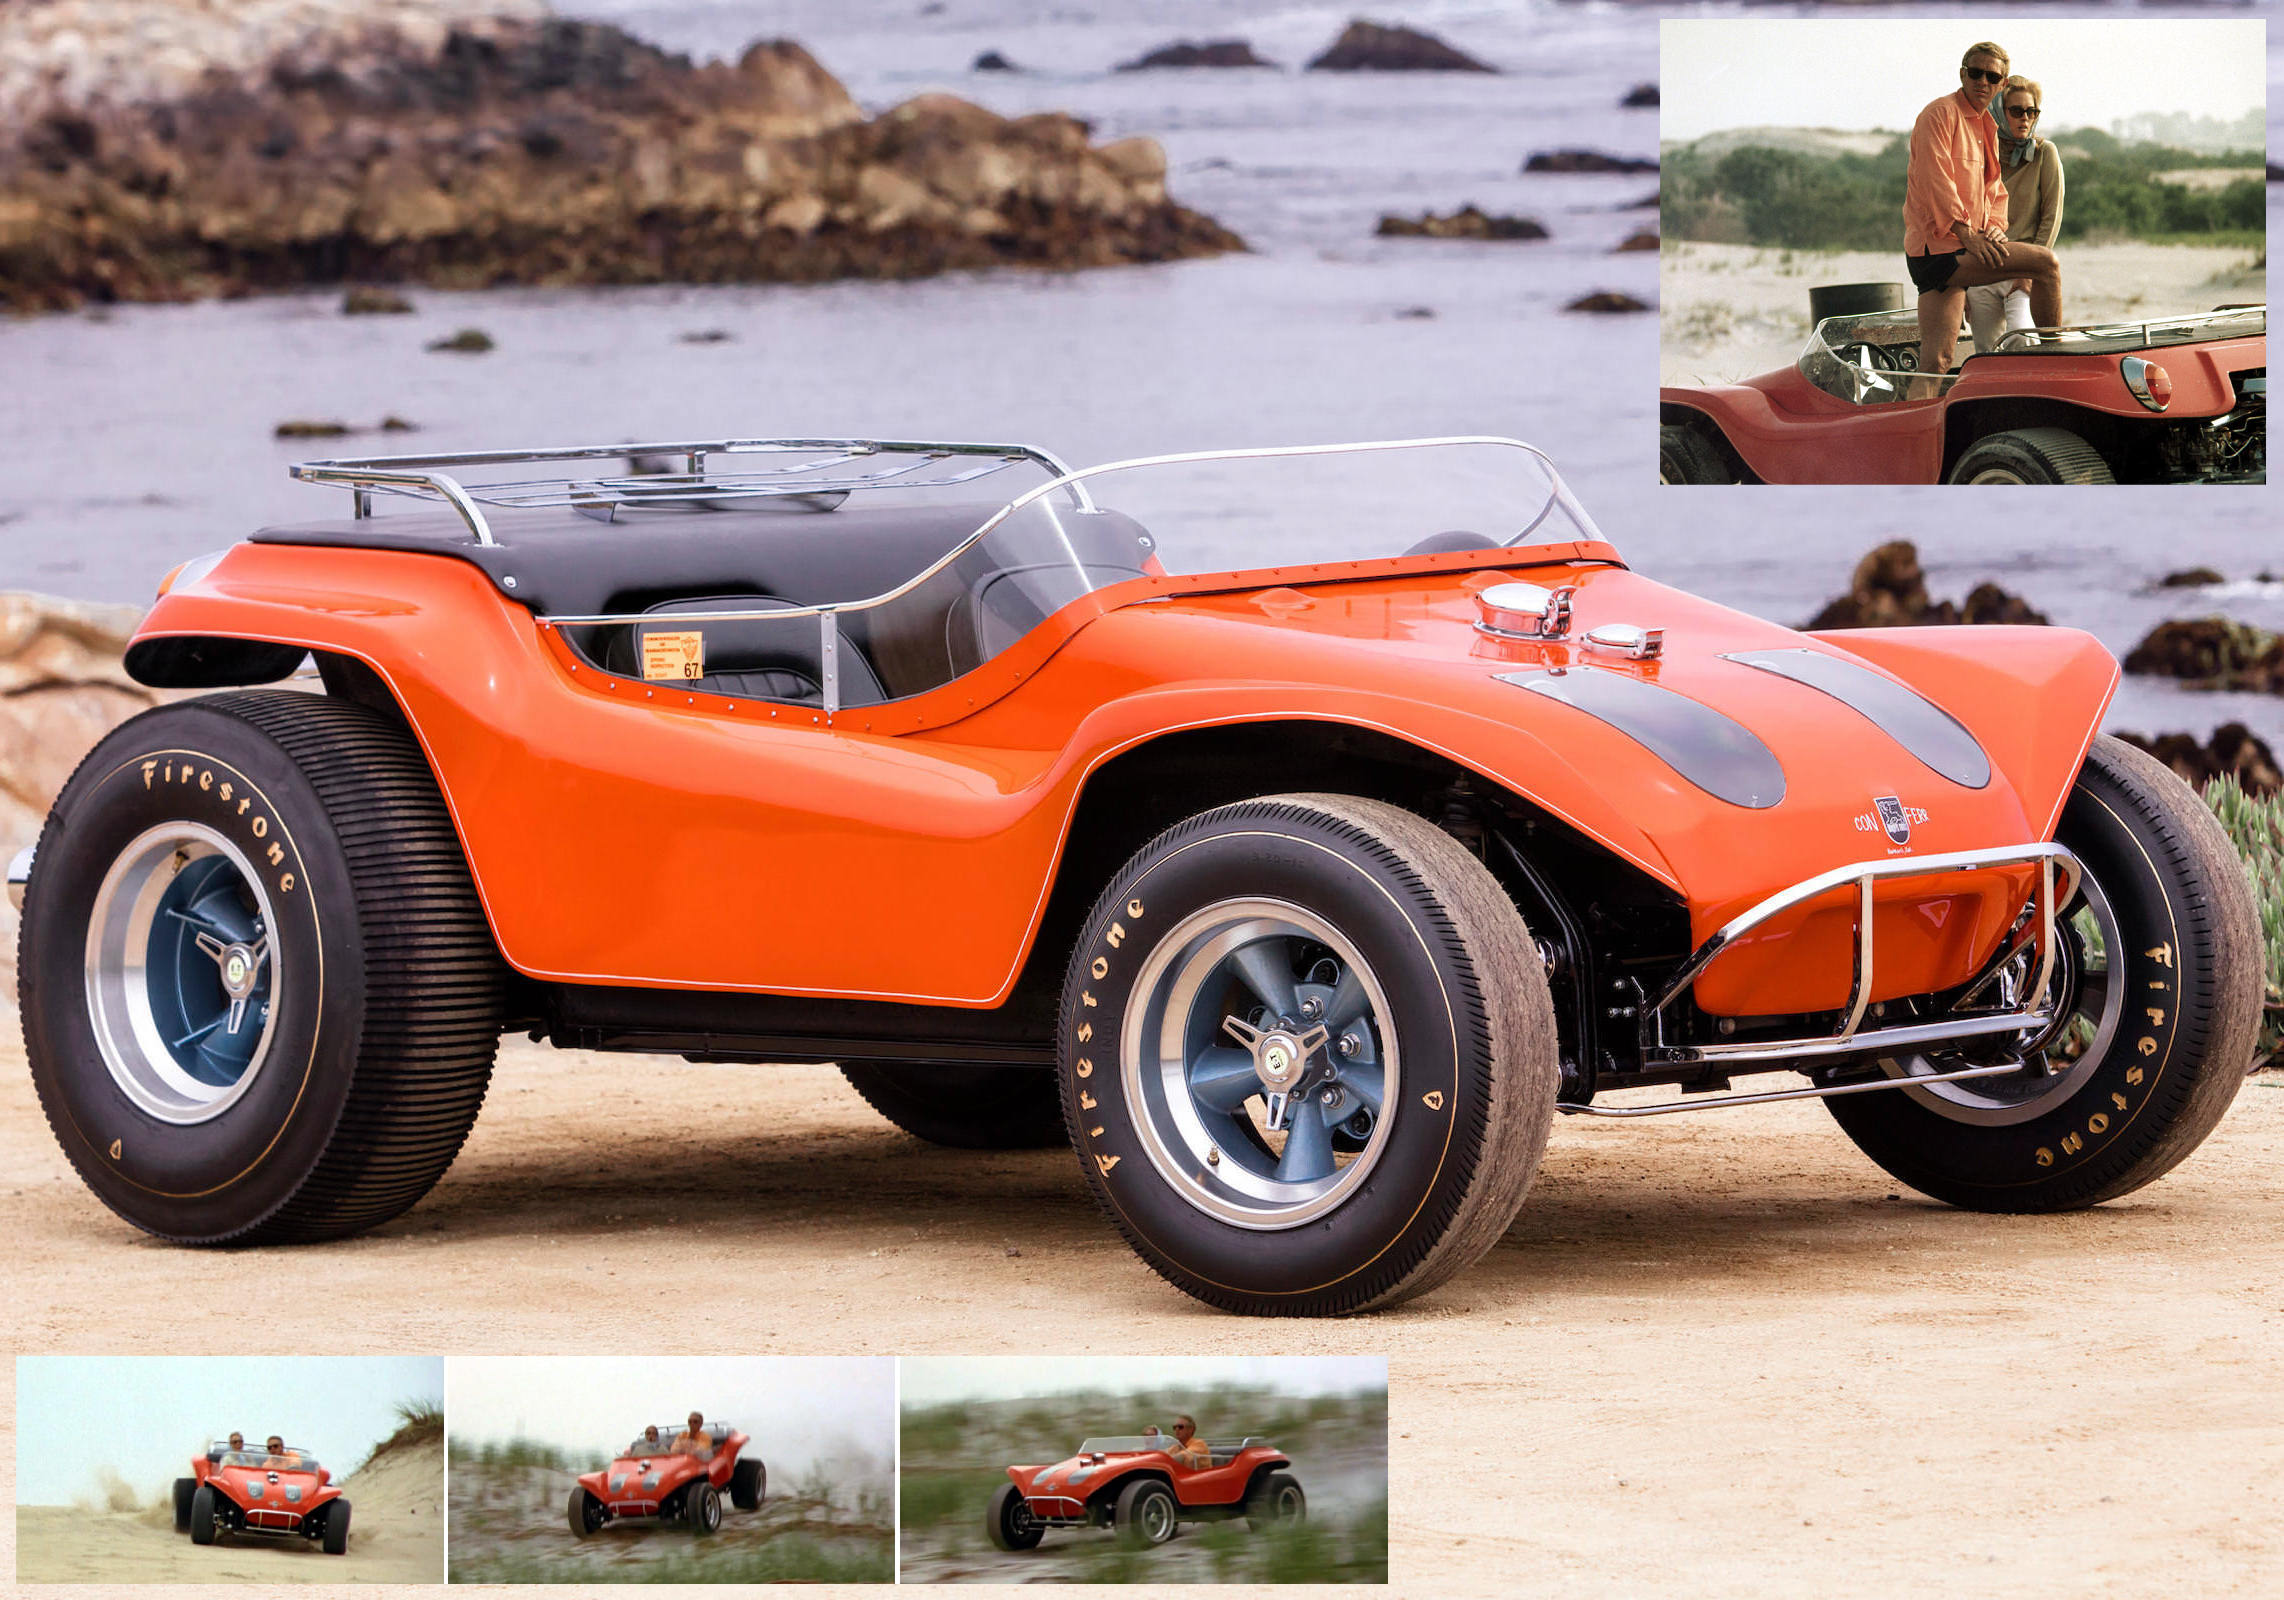 For Sale The Dune Buggy Driven By Steve Mcqueen In The